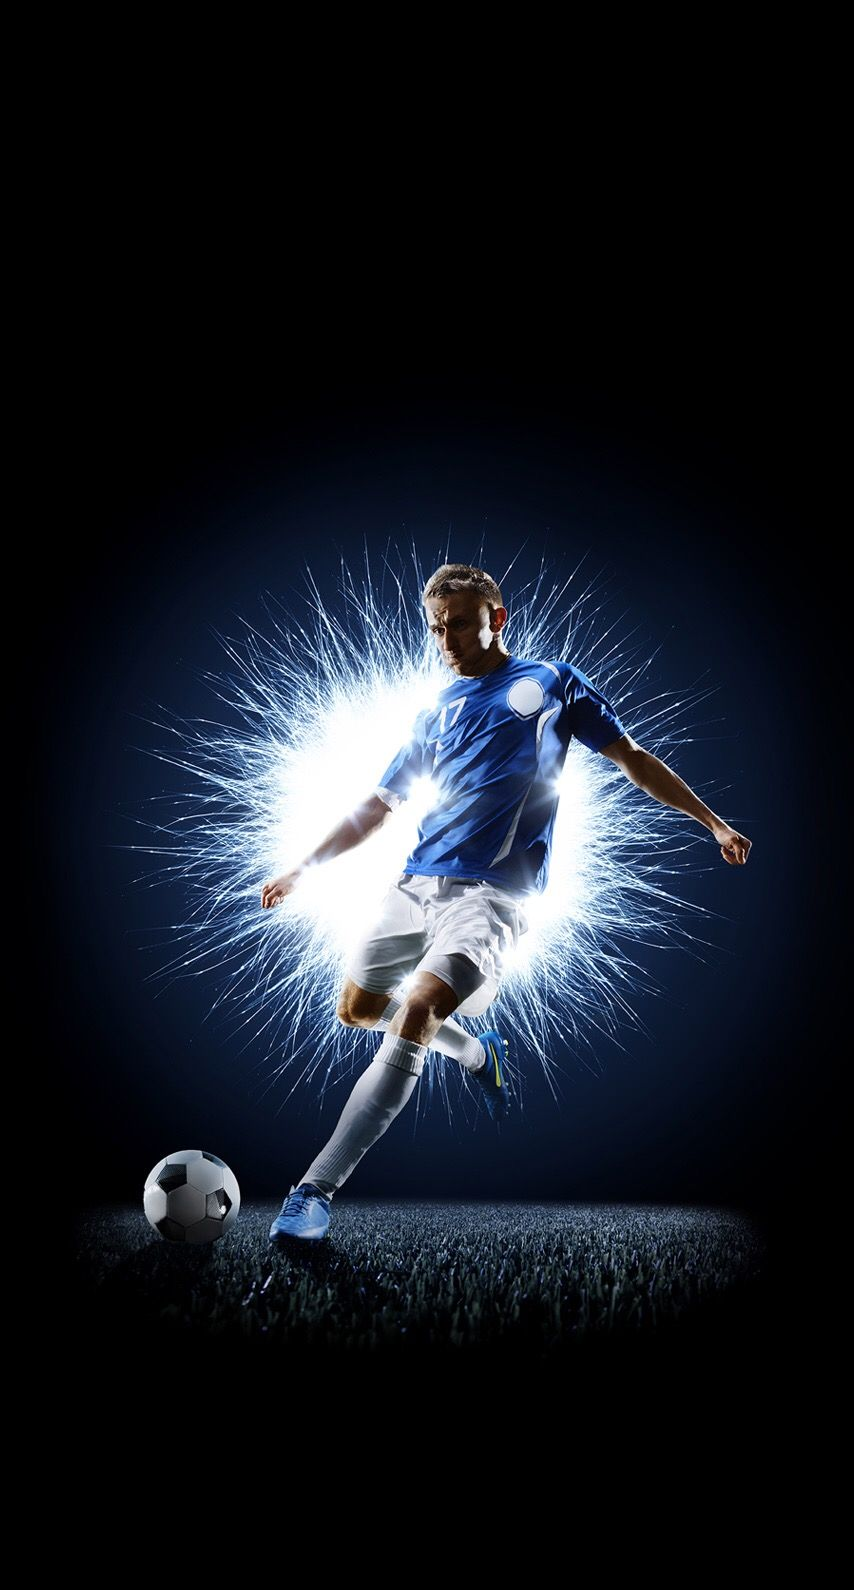 Hd Football Wallpapers For Iphone Android Free Football Background Football Wallpaper Football Wallpaper Iphone